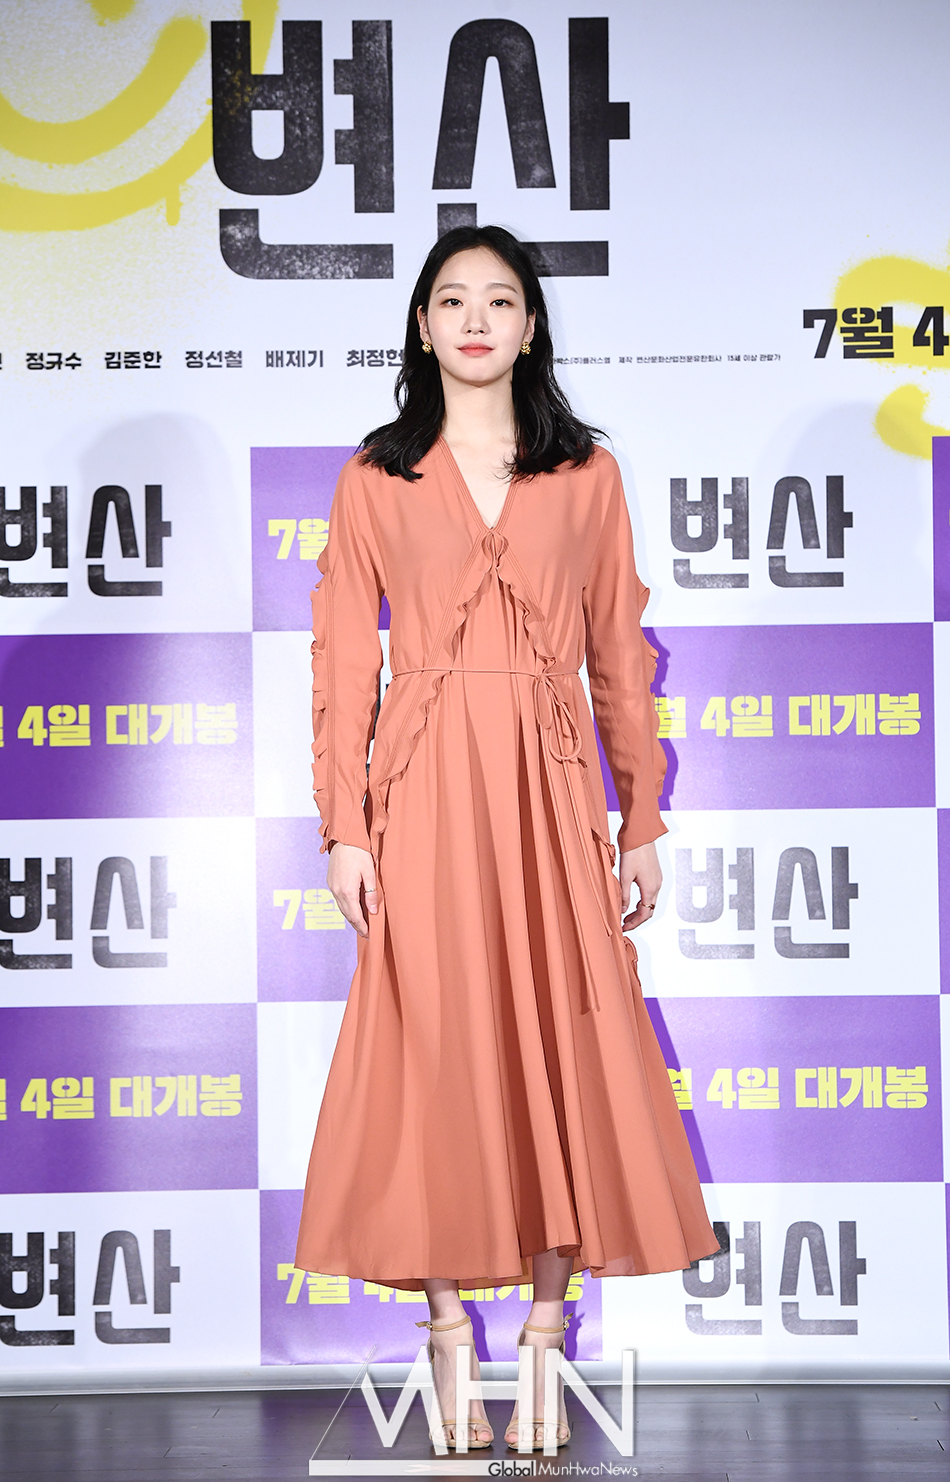 [MHN Photo] 'Byeonsan' Kim Go-eun 'peach colored dress with elegancy'